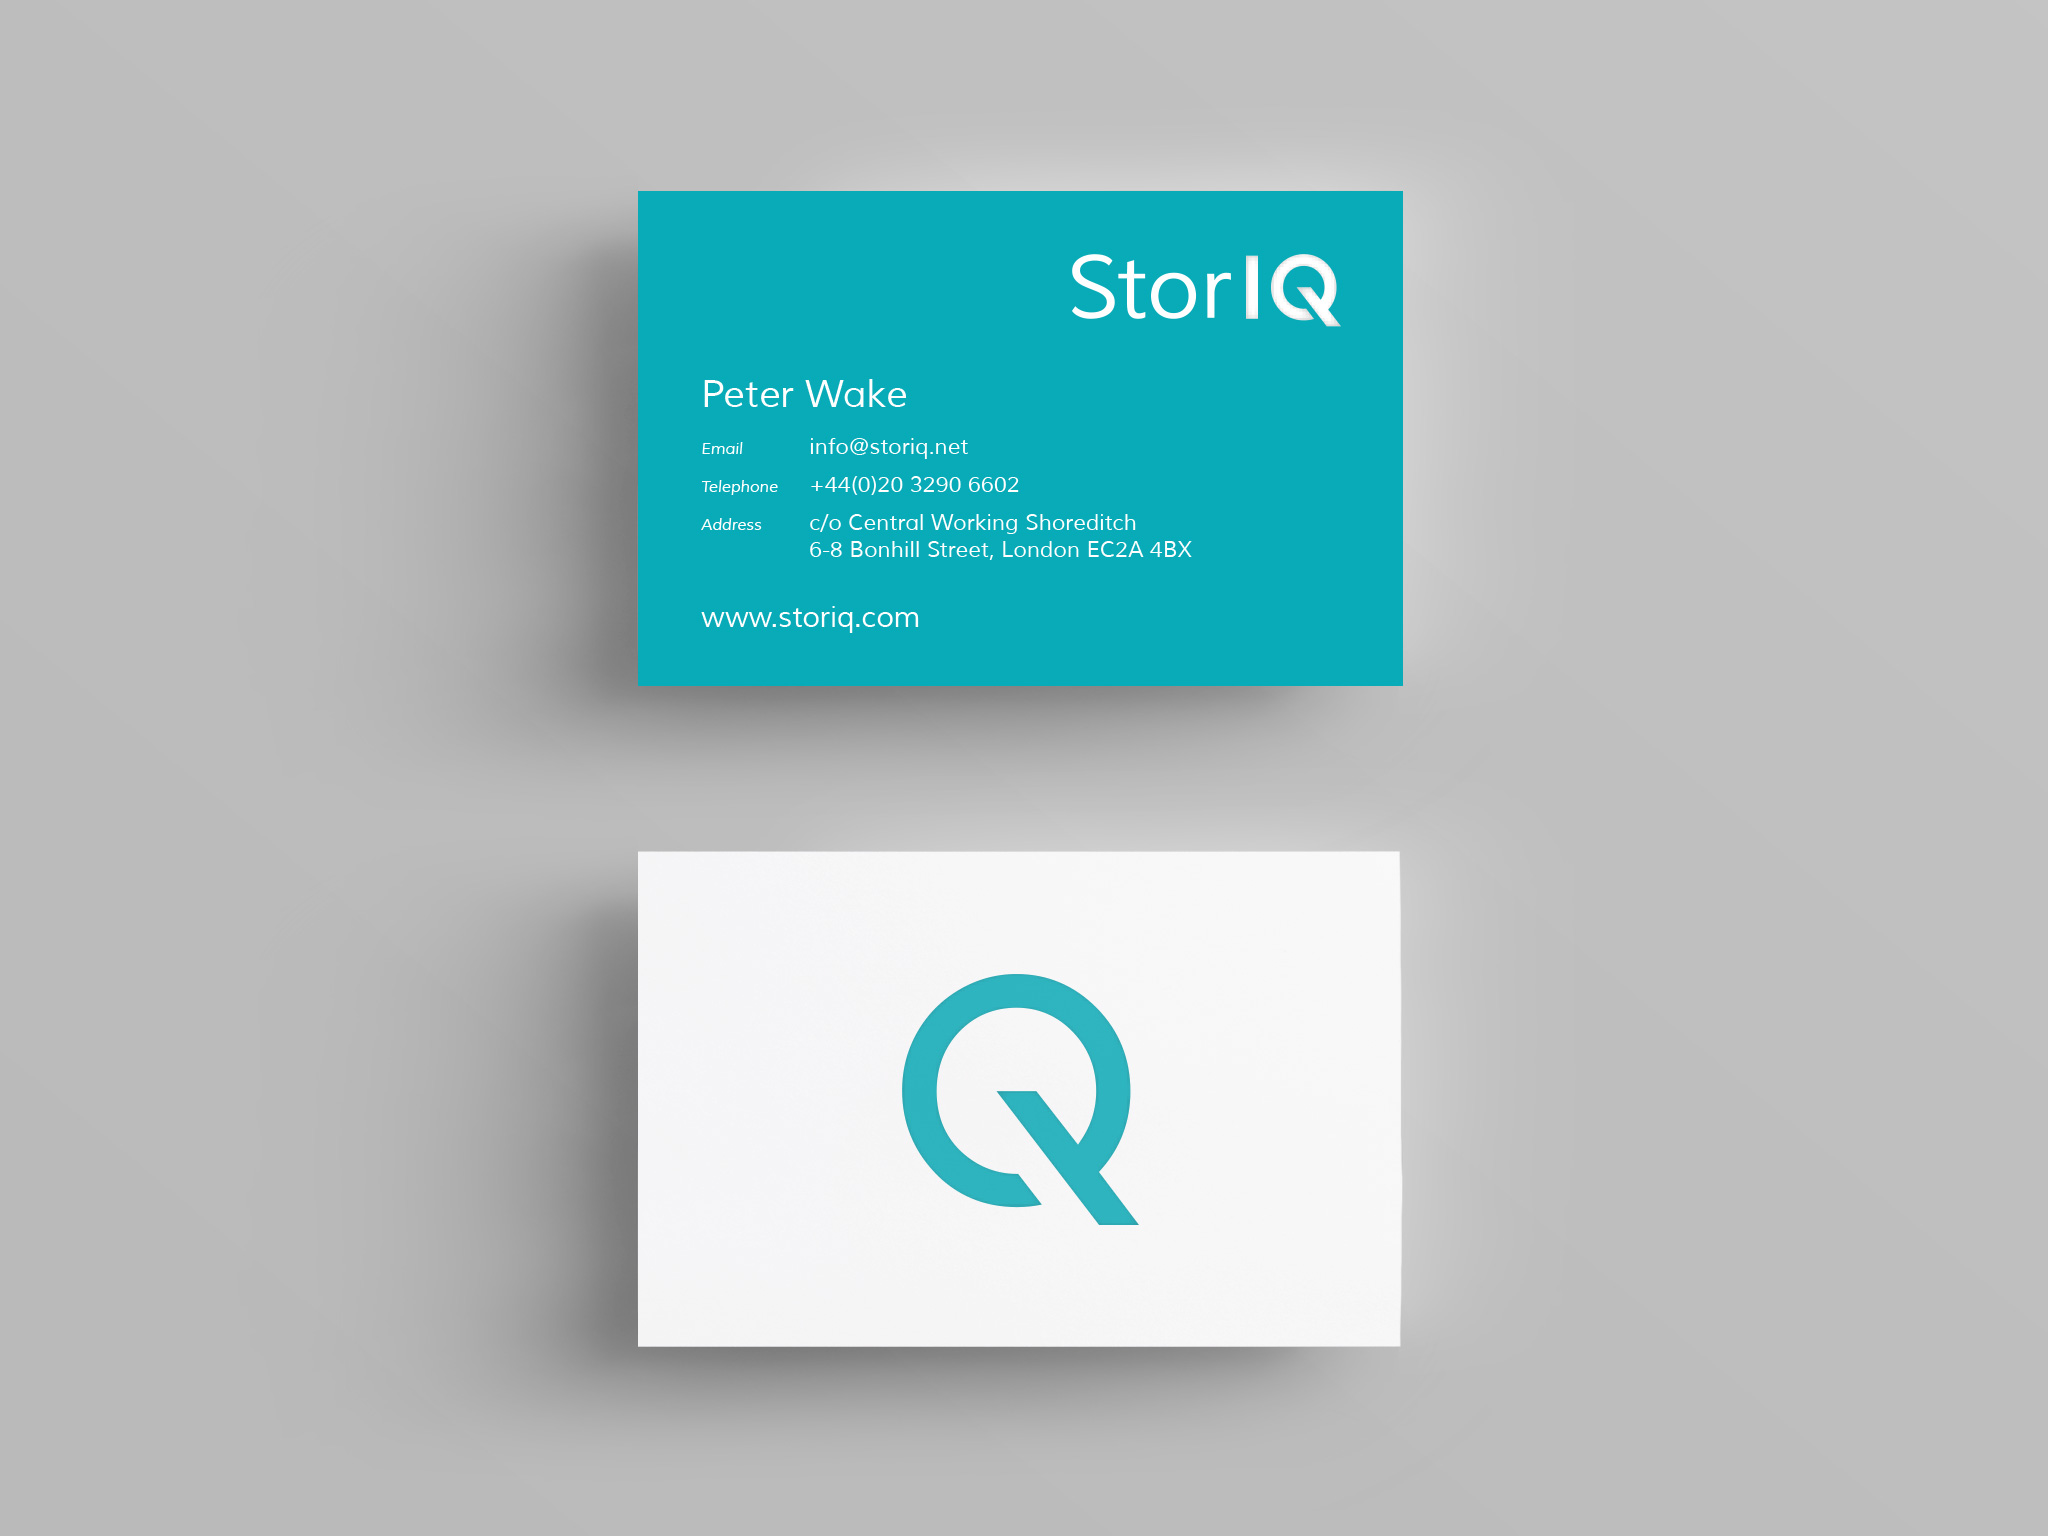 StorIQ brand creation, brand guidelines and marketing collateral